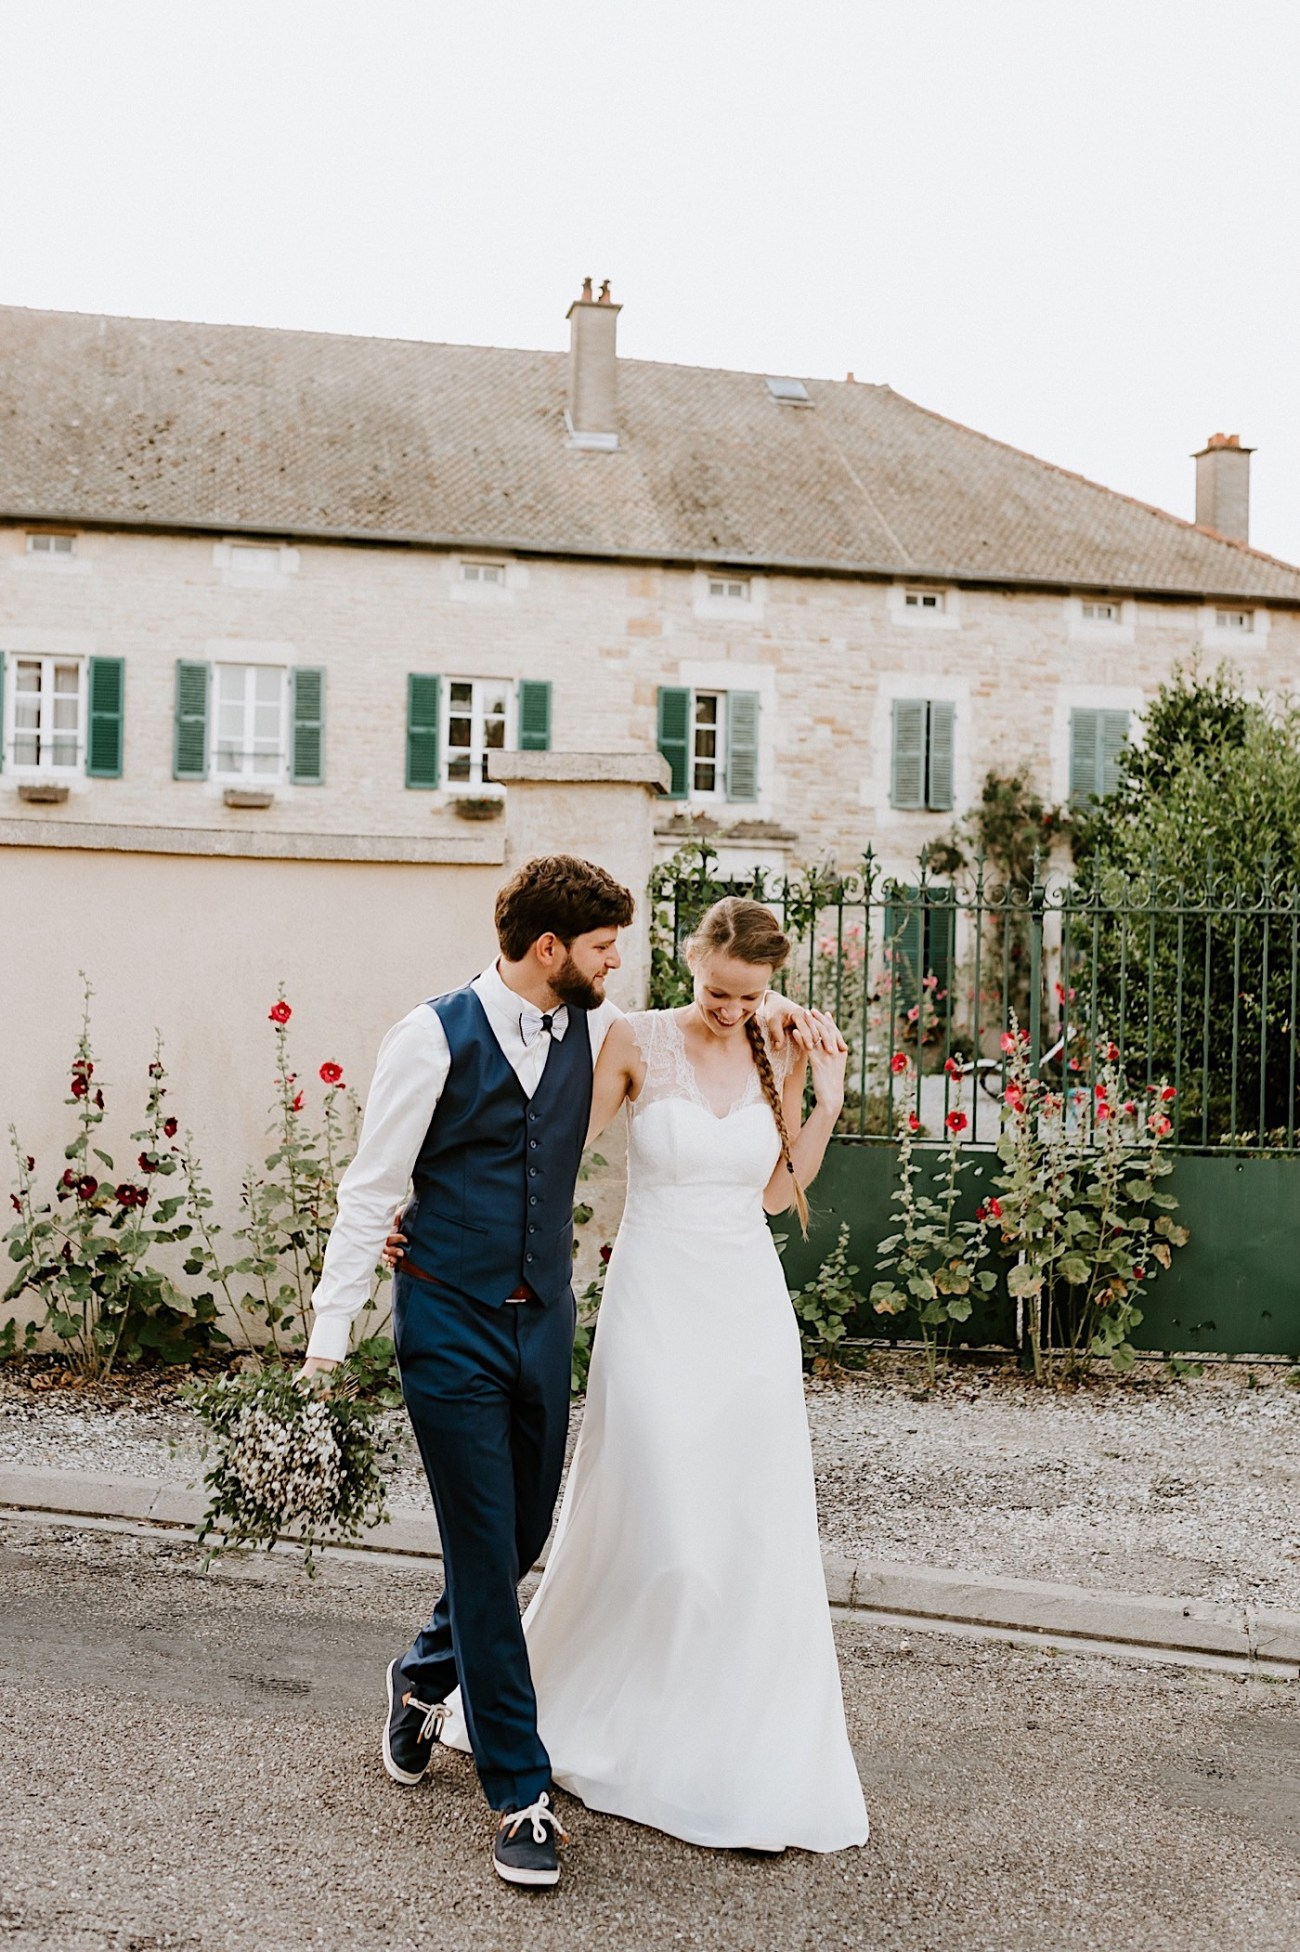 French Rural Wedding After Wedding Day Photos Paris Wedding Photographer 013